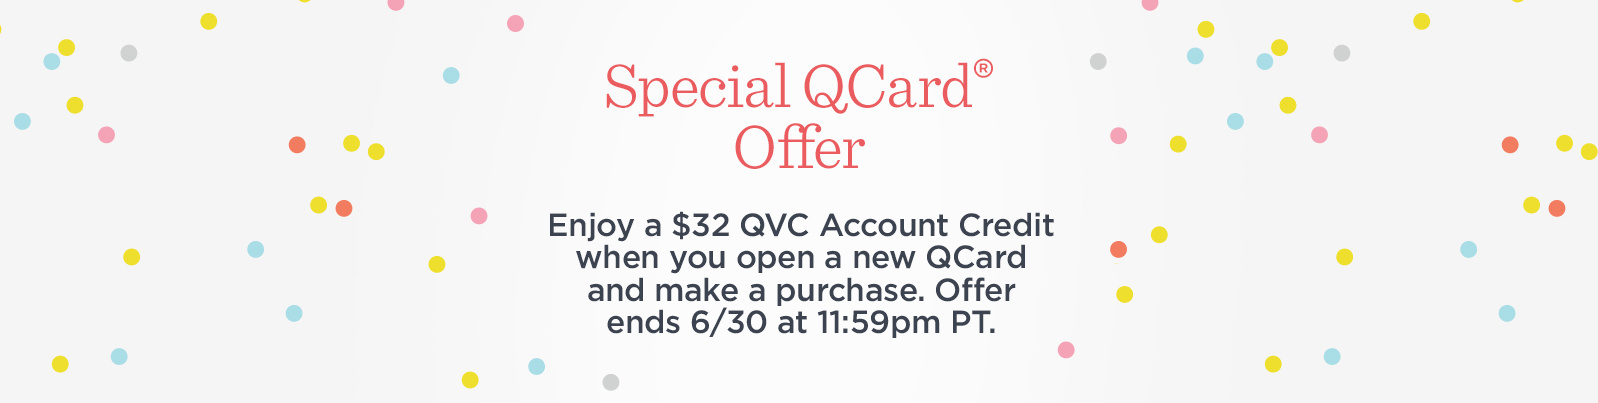 Special QCard Offer.  Enjoy a $32 QVC Account Credit when you open a new QCard and make a purchase. Offer ends 6/30 at 11:59pm PT.